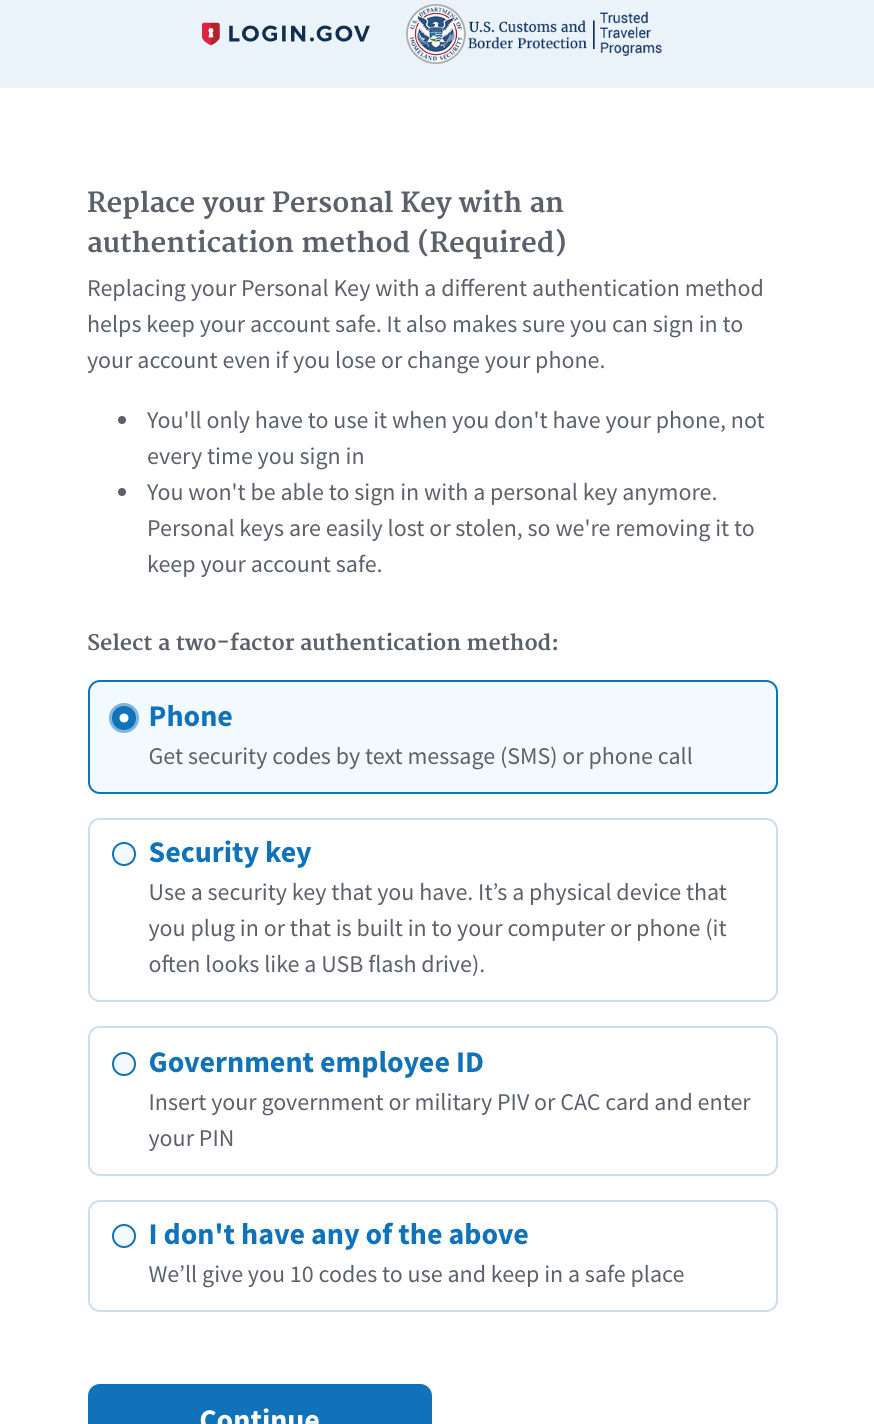 Required upgrade to a new 2FA option. They are: 1) SMS, 2) physical security key, 3) government security key, 4) none of the above and they'll give you 10 codes.